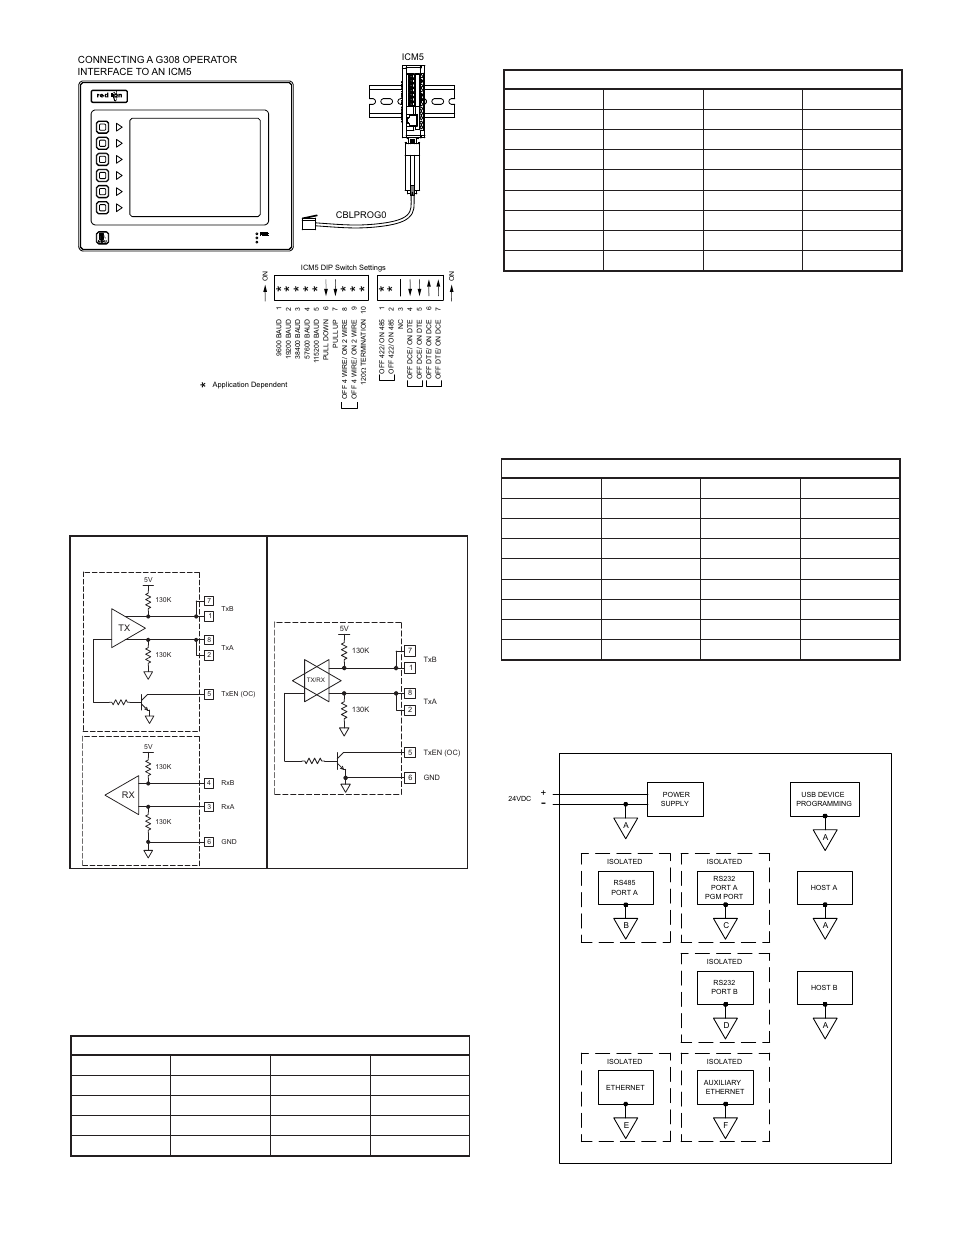 Rs485 Wiring Guide Free Download Wiring Diagrams Pictures Wiring